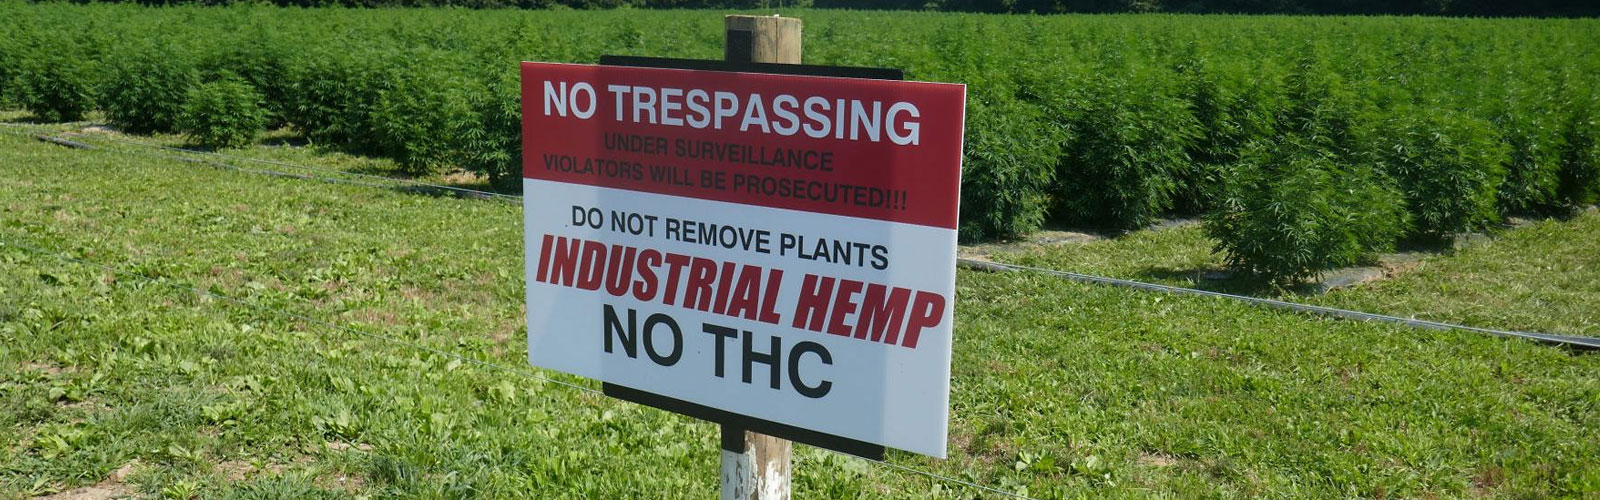 5 Must-Know Tips for Hemp Theft Prevention